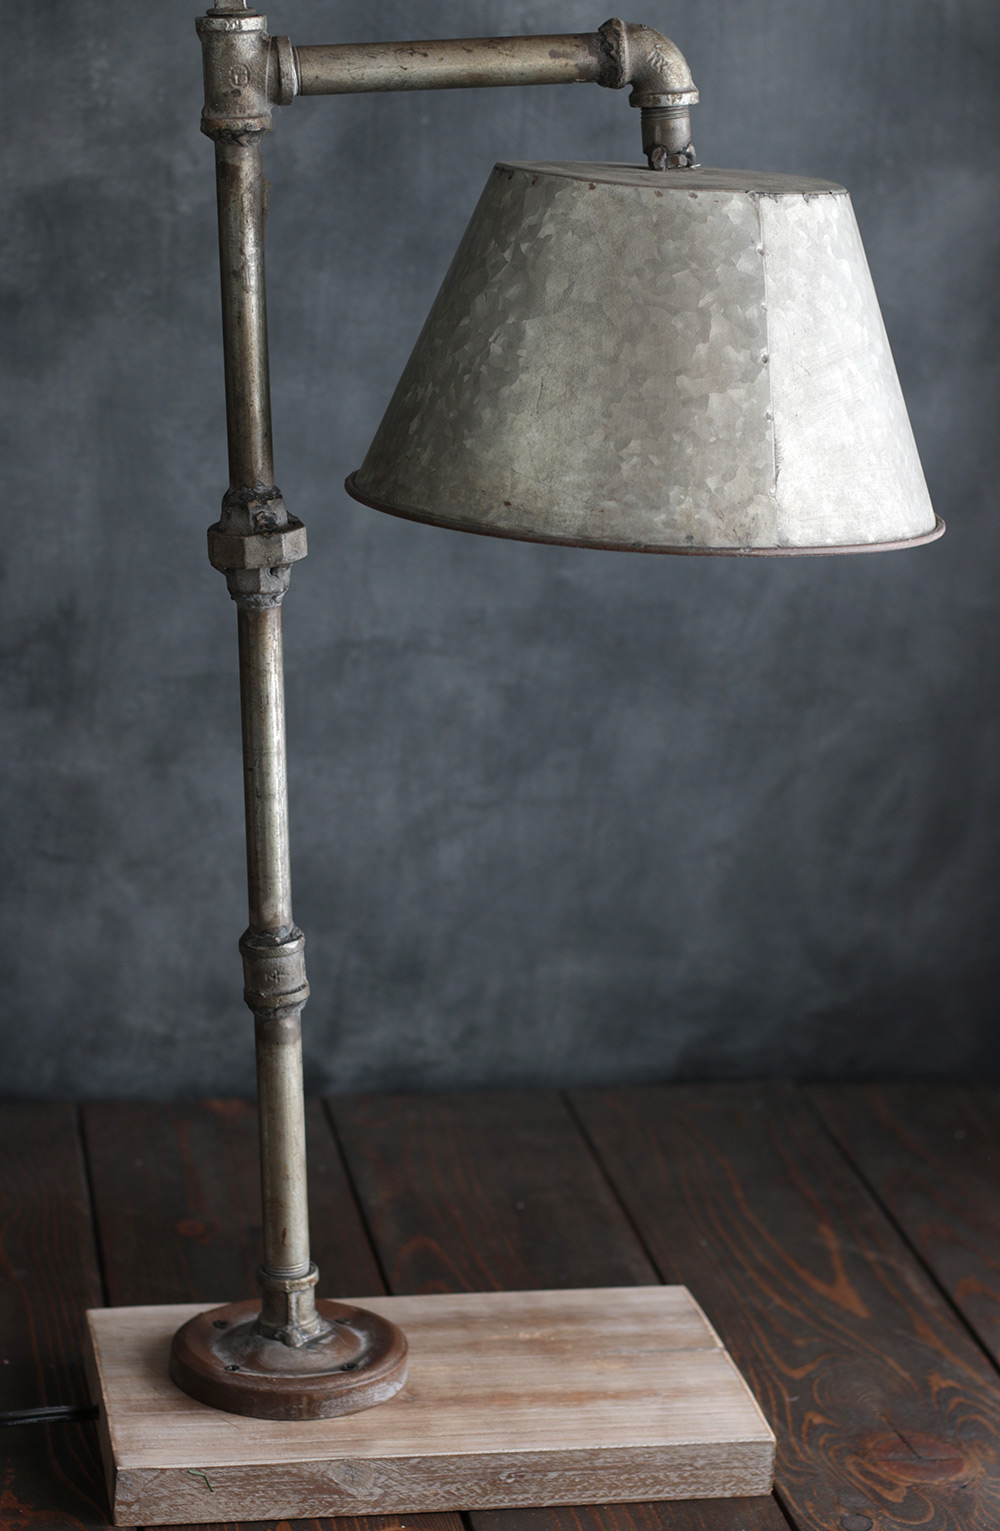 Industrial Pipe Table Lamp with Galvanized Shade - The Weed Patch